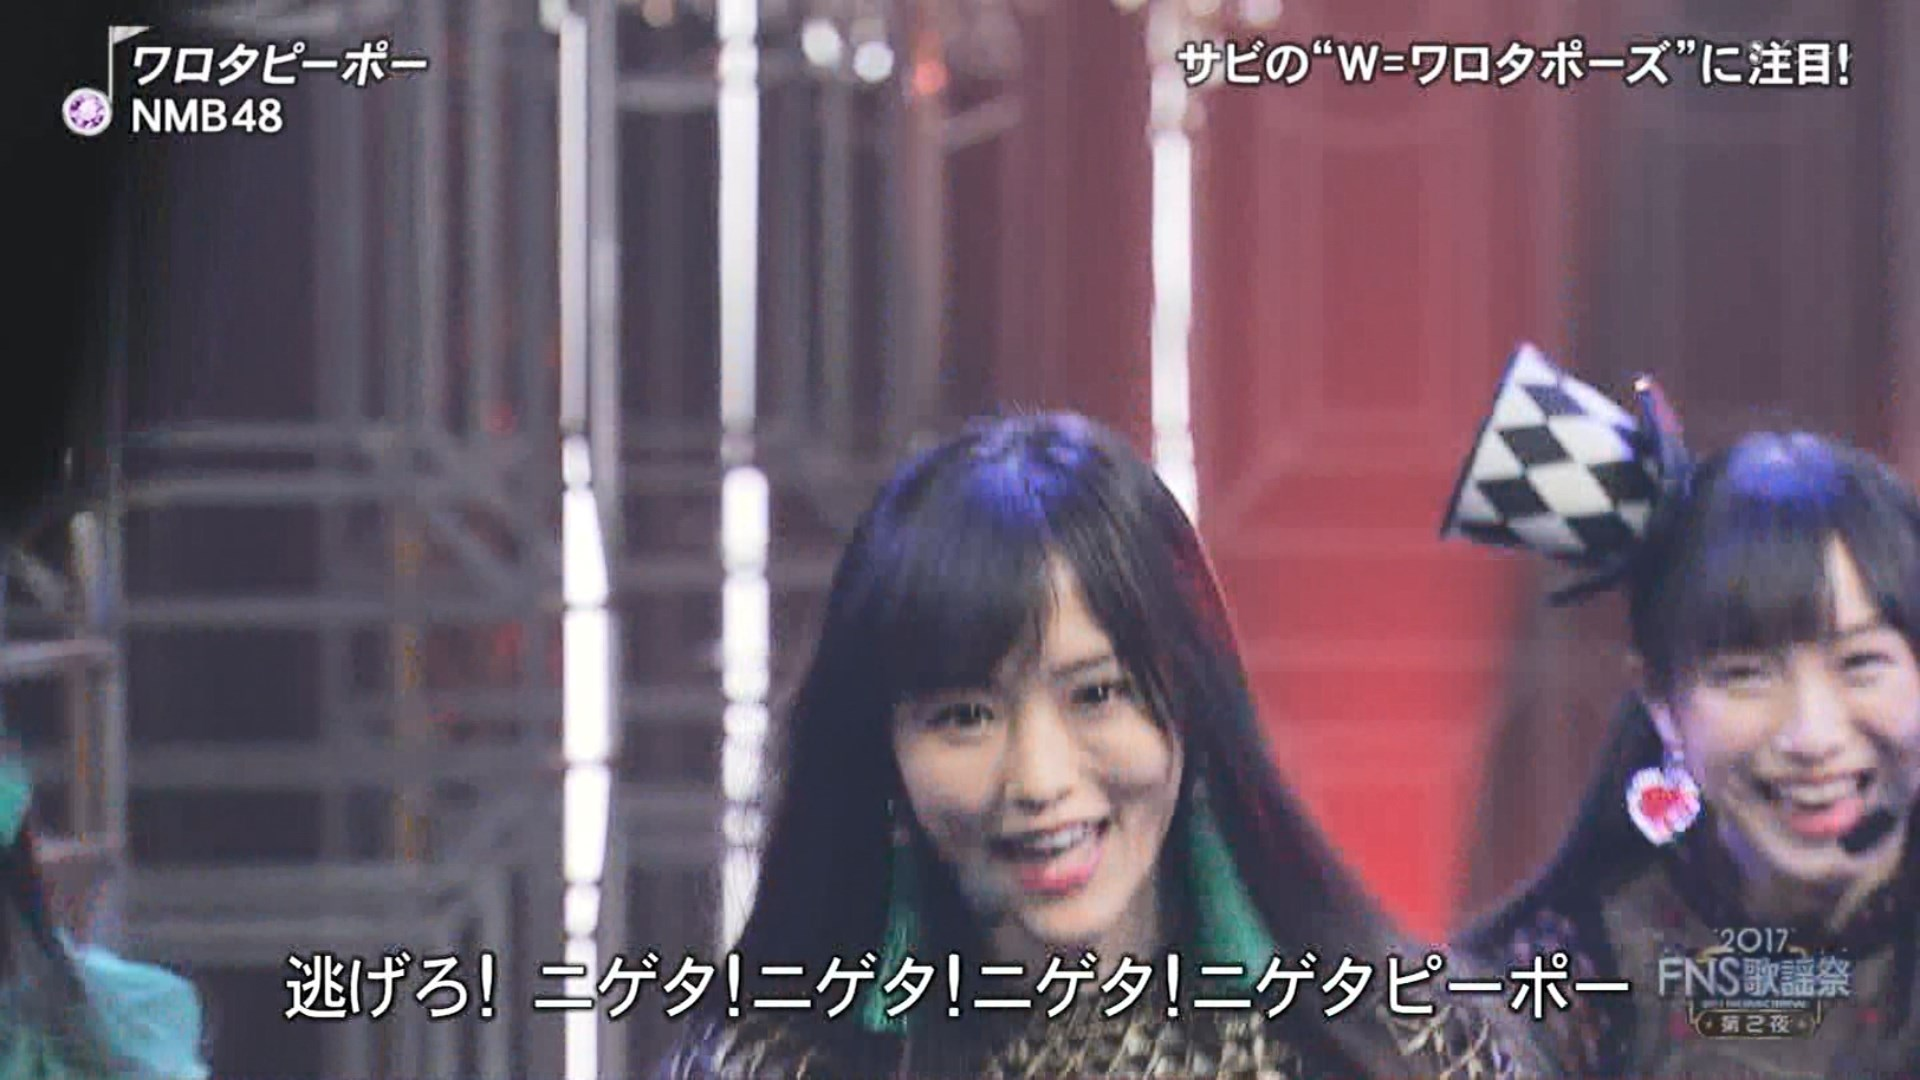 2017FNS歌謡祭第2夜・NMB48ワロタピーポーキャプ-072